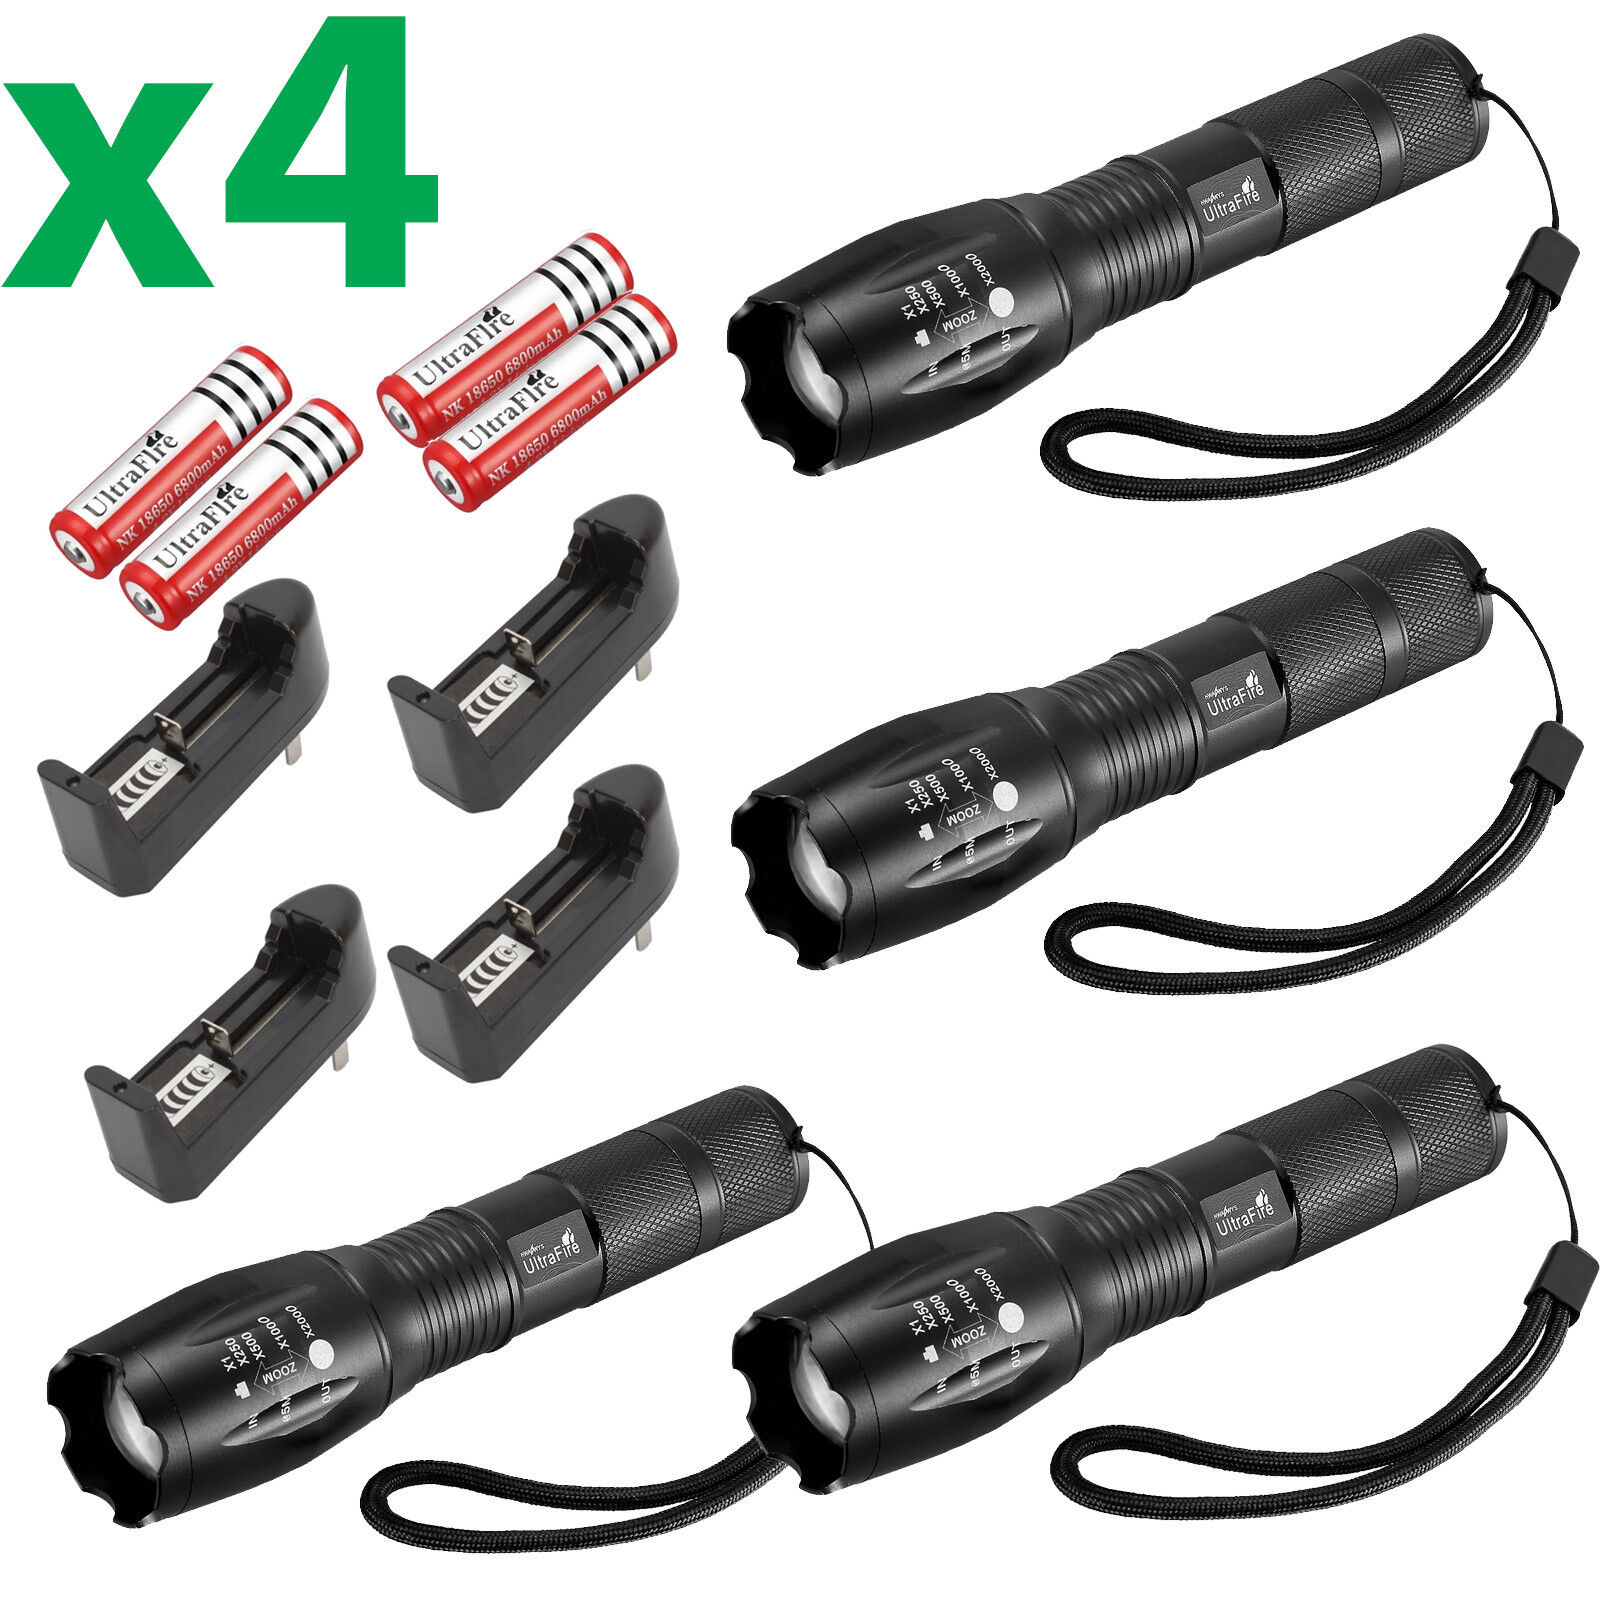 6 X Ultrafire Tactical 15000LM T6 Power LED Zoom Flashlight + 18650&Charger USA 4 Flashlight,4 Battery,4 Charger